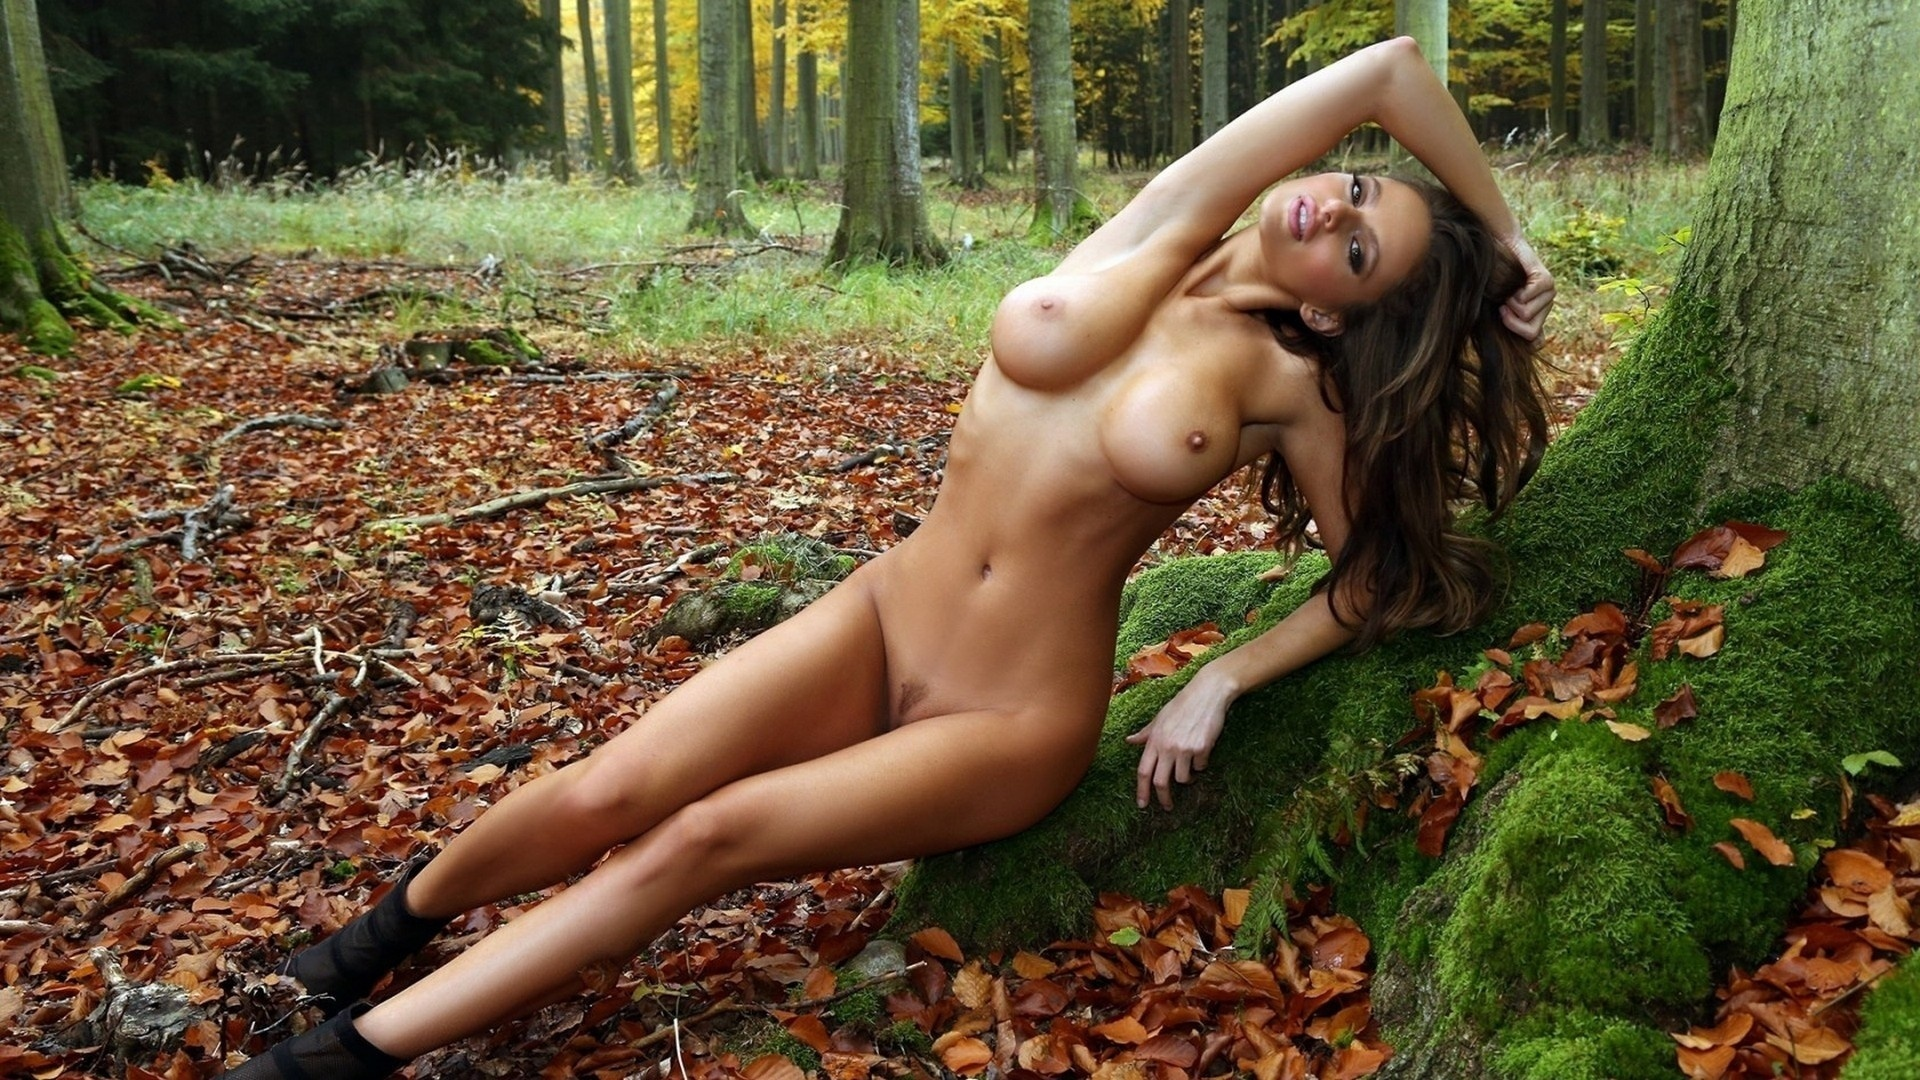 Forest nud girl wallpaper hardcore picture